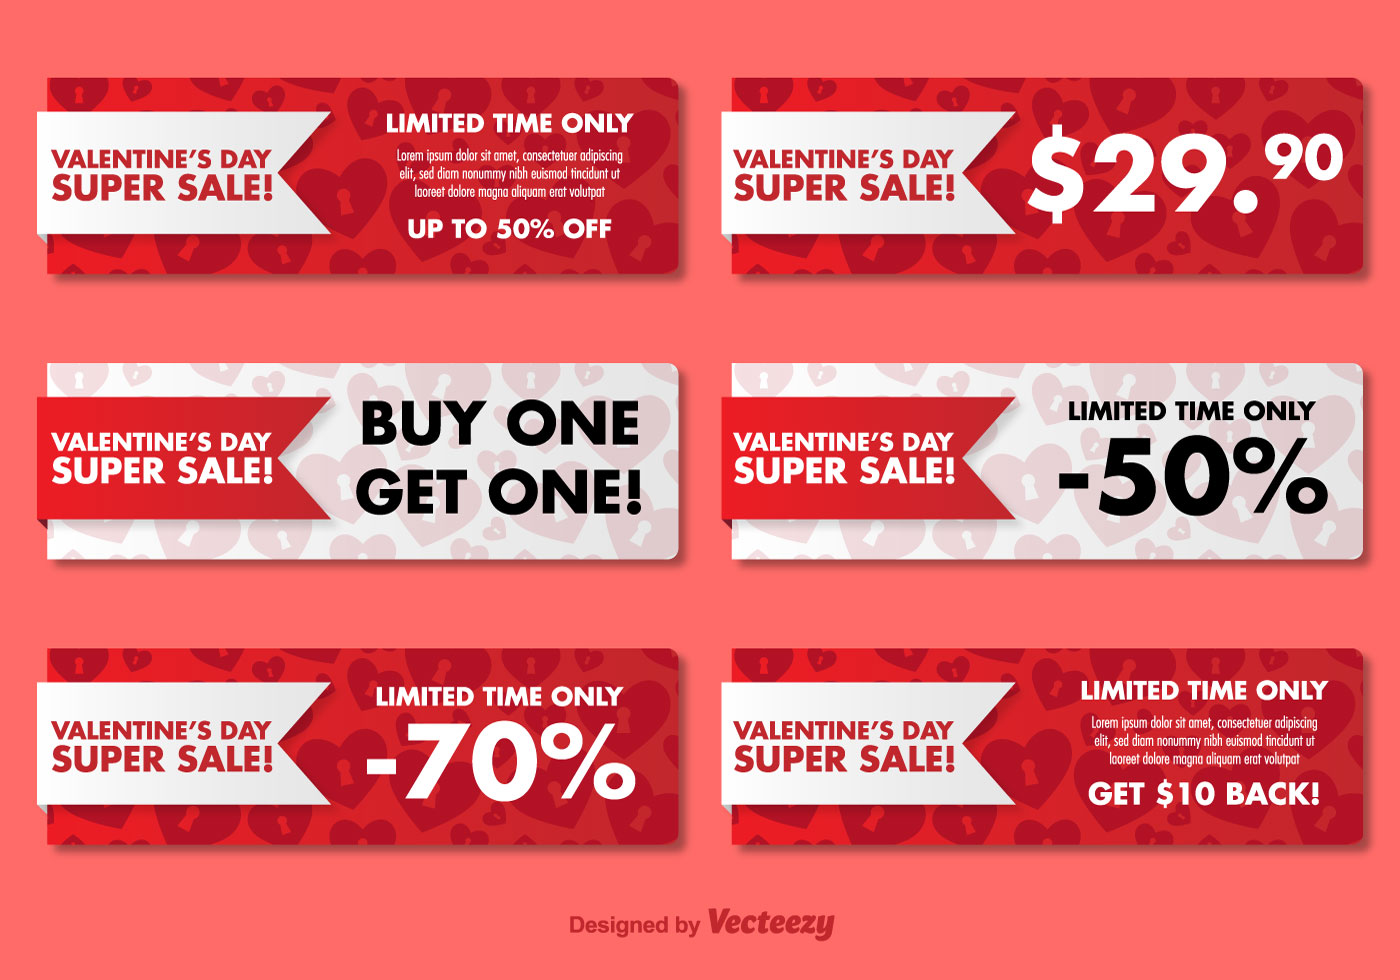 Valentine's Day Sale Banners - Download Free Vector Art, Stock Graphics & Images